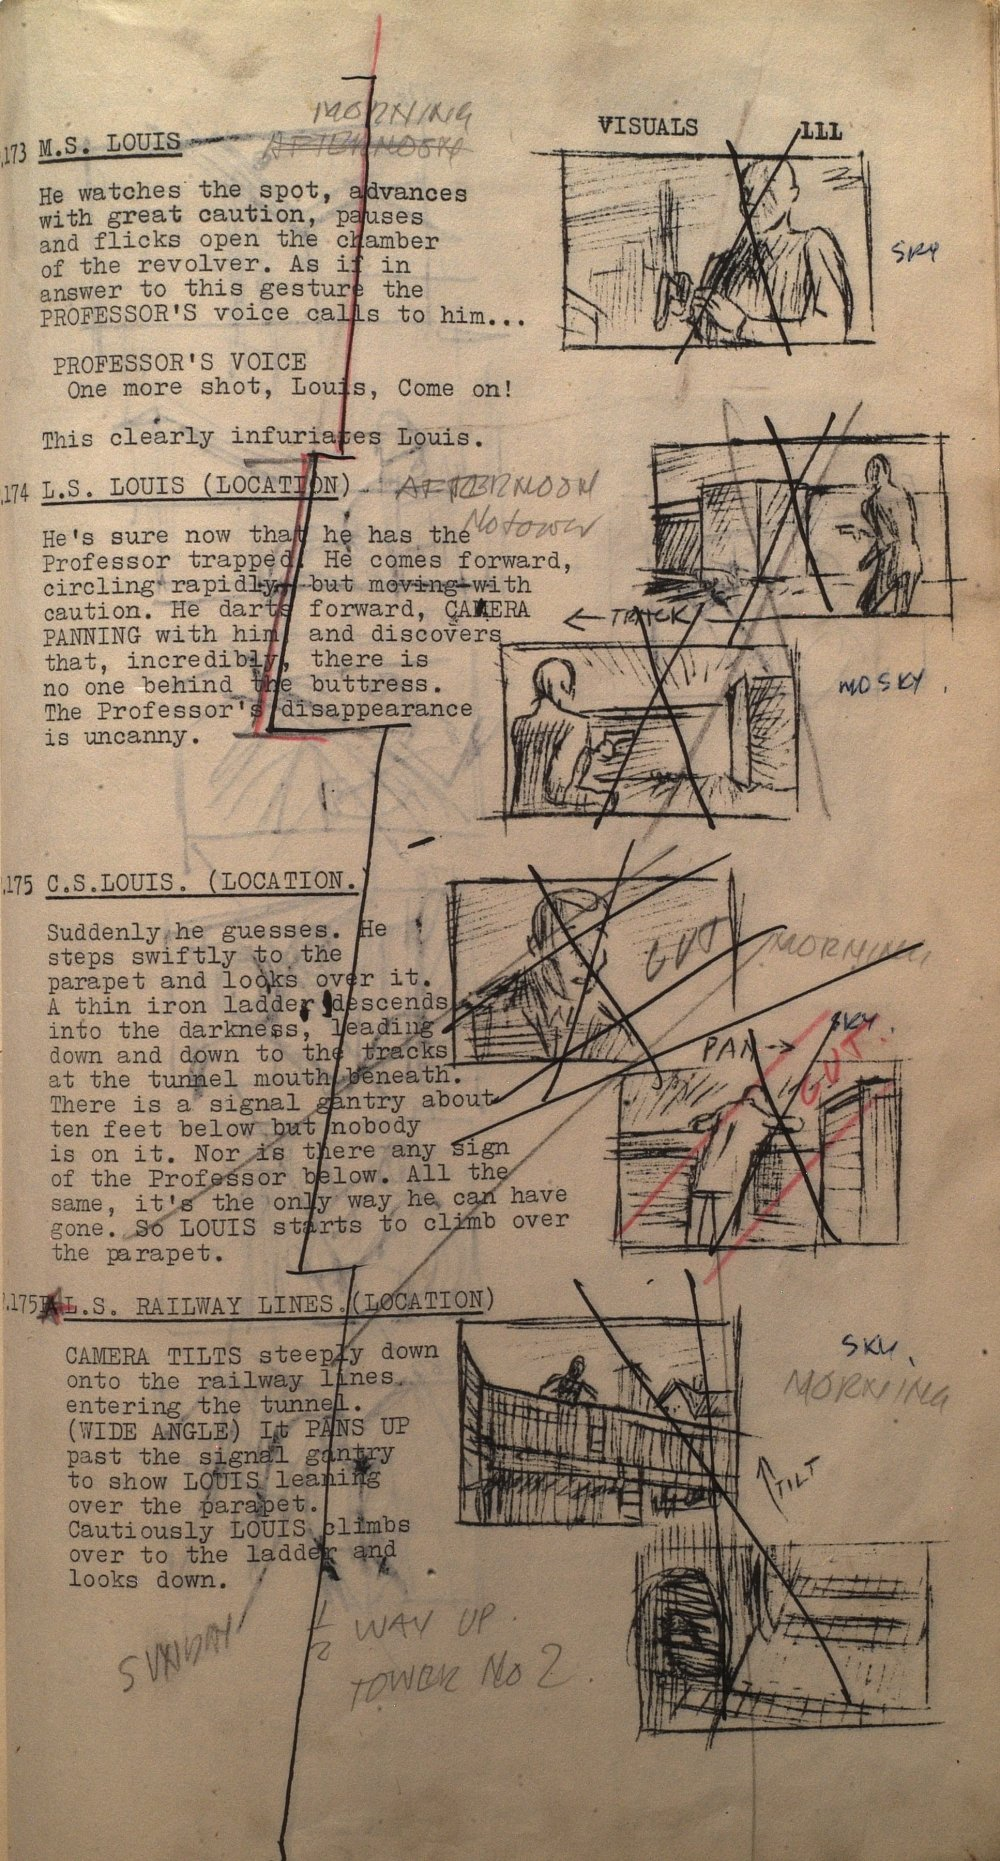 Director Alexander MacKendrick's annotated and storyboarded script for The Ladykillers